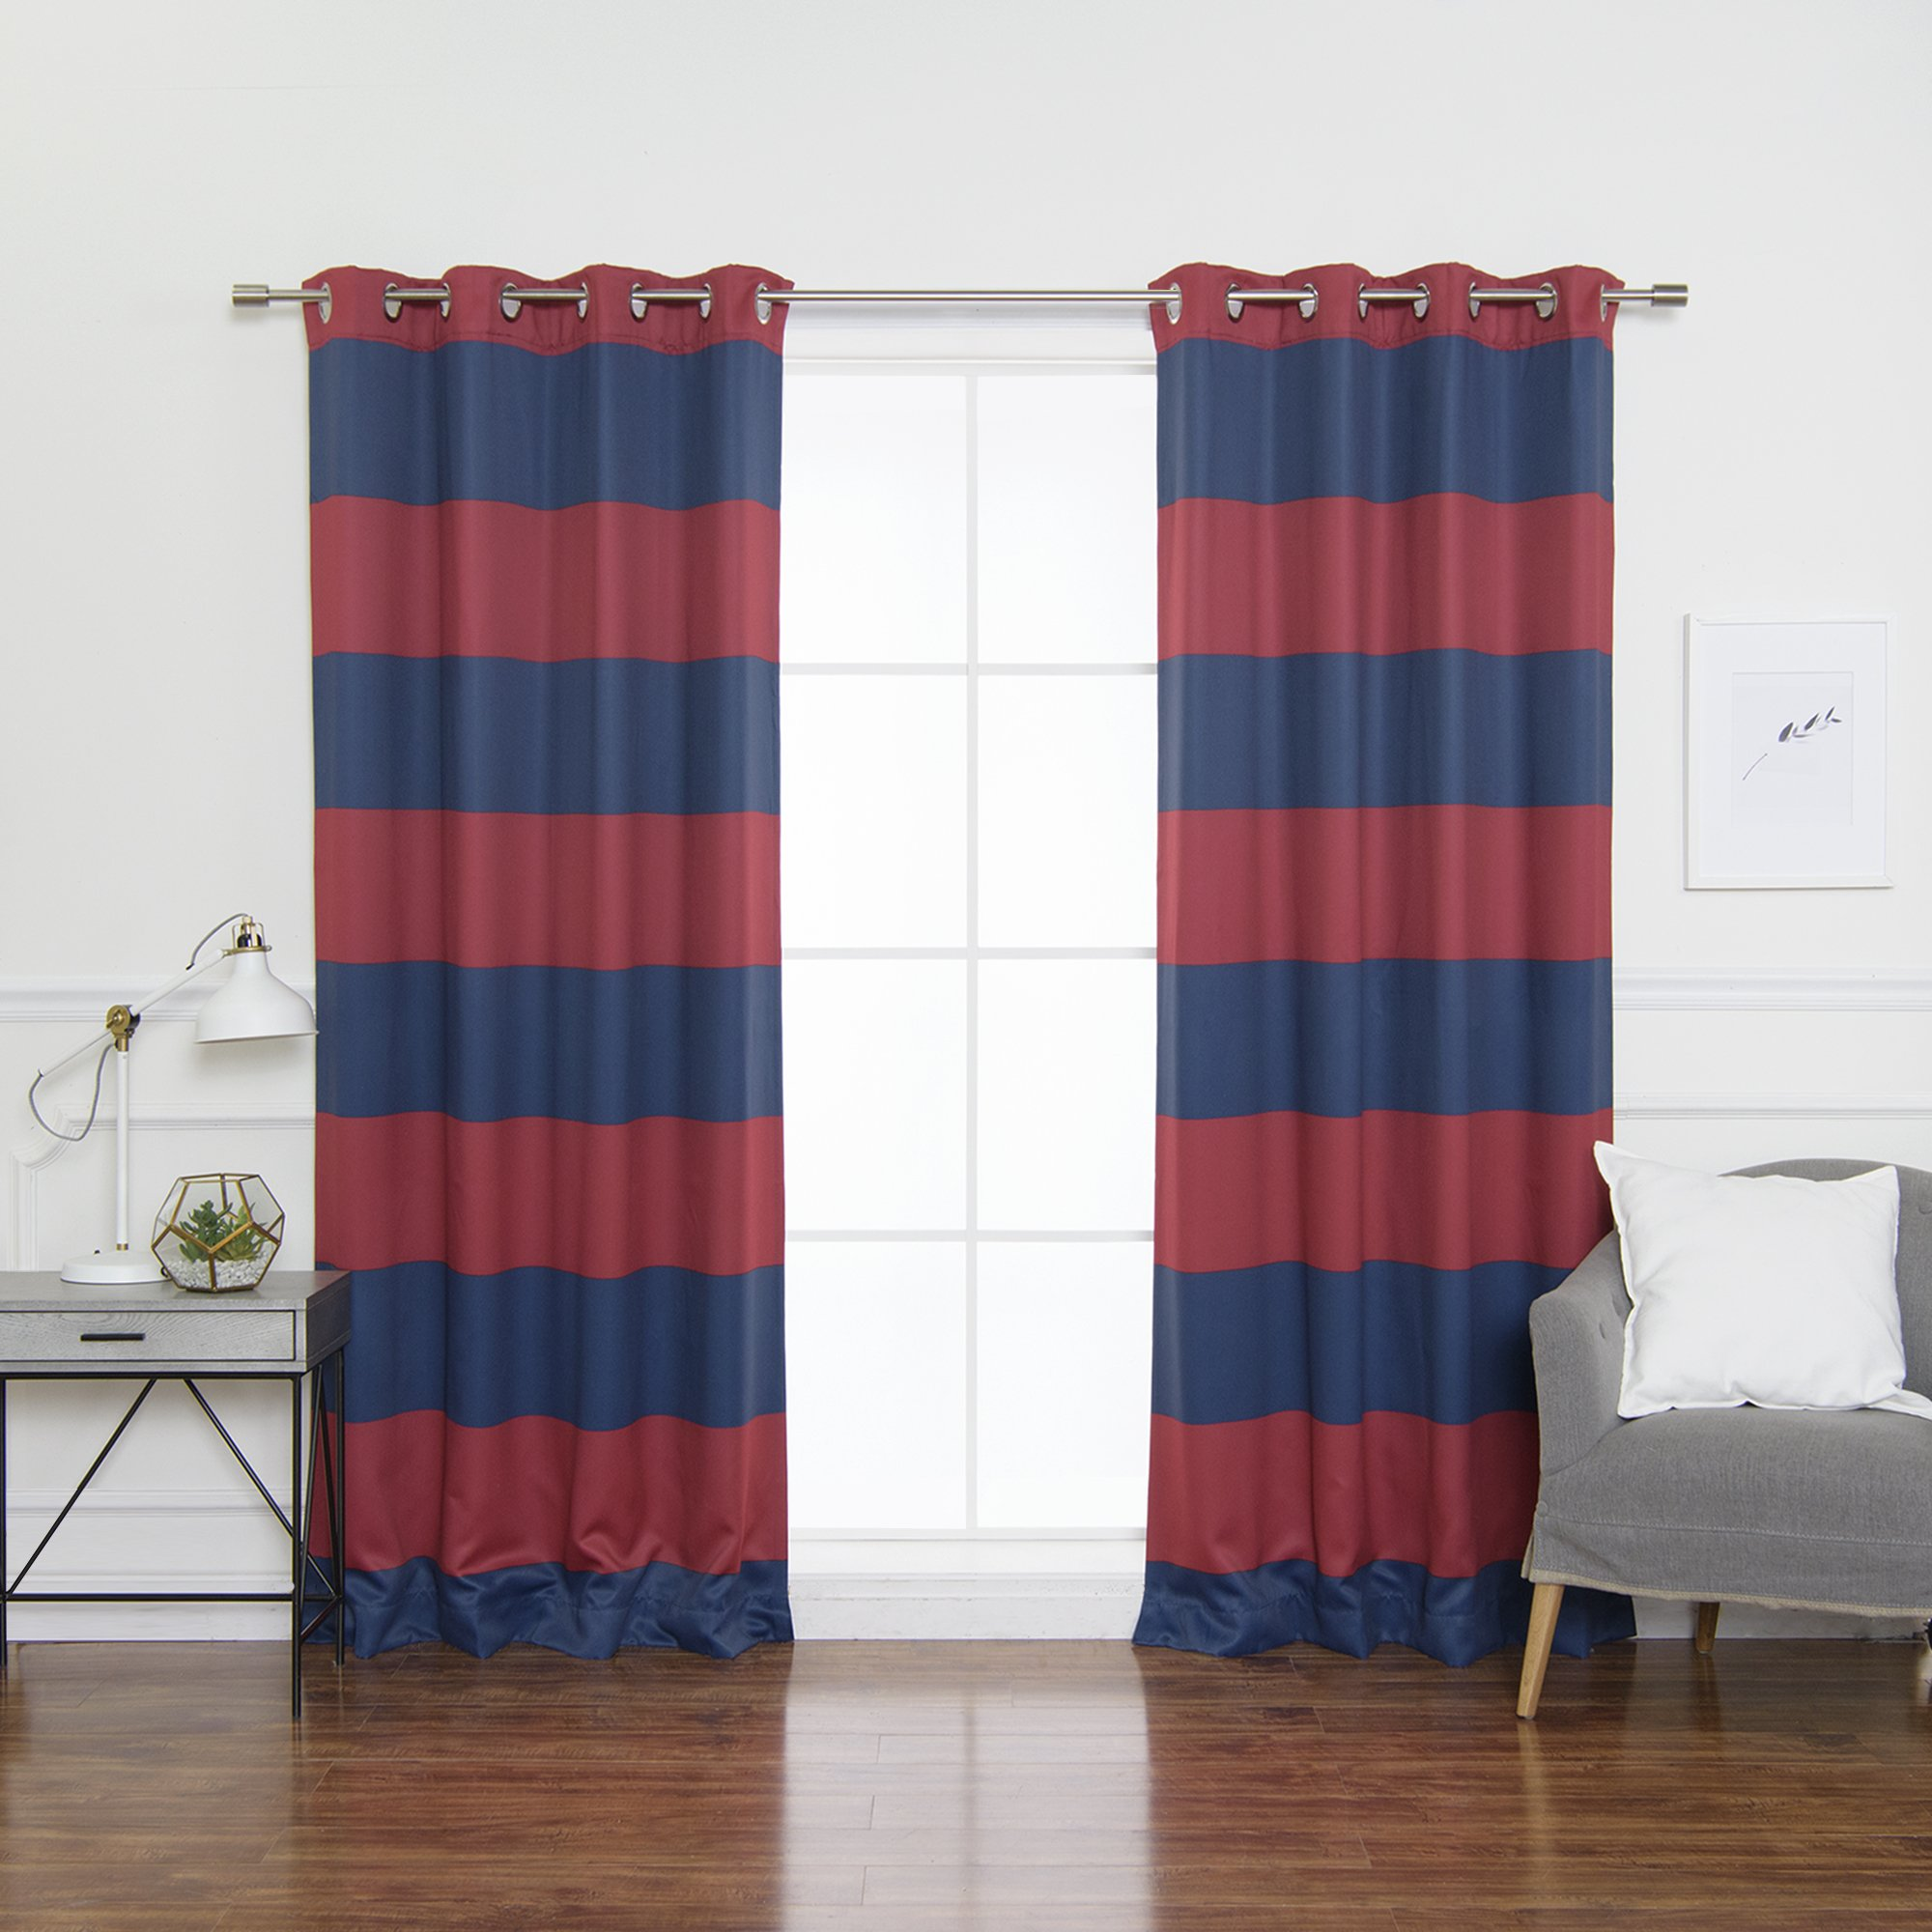 Best Home Fashion Rugby Stripe Room Darkening Curtains - Stainless Nickel Grommet - 52'' W x 84'' L - Navy.Red (Set of 2 Panels)